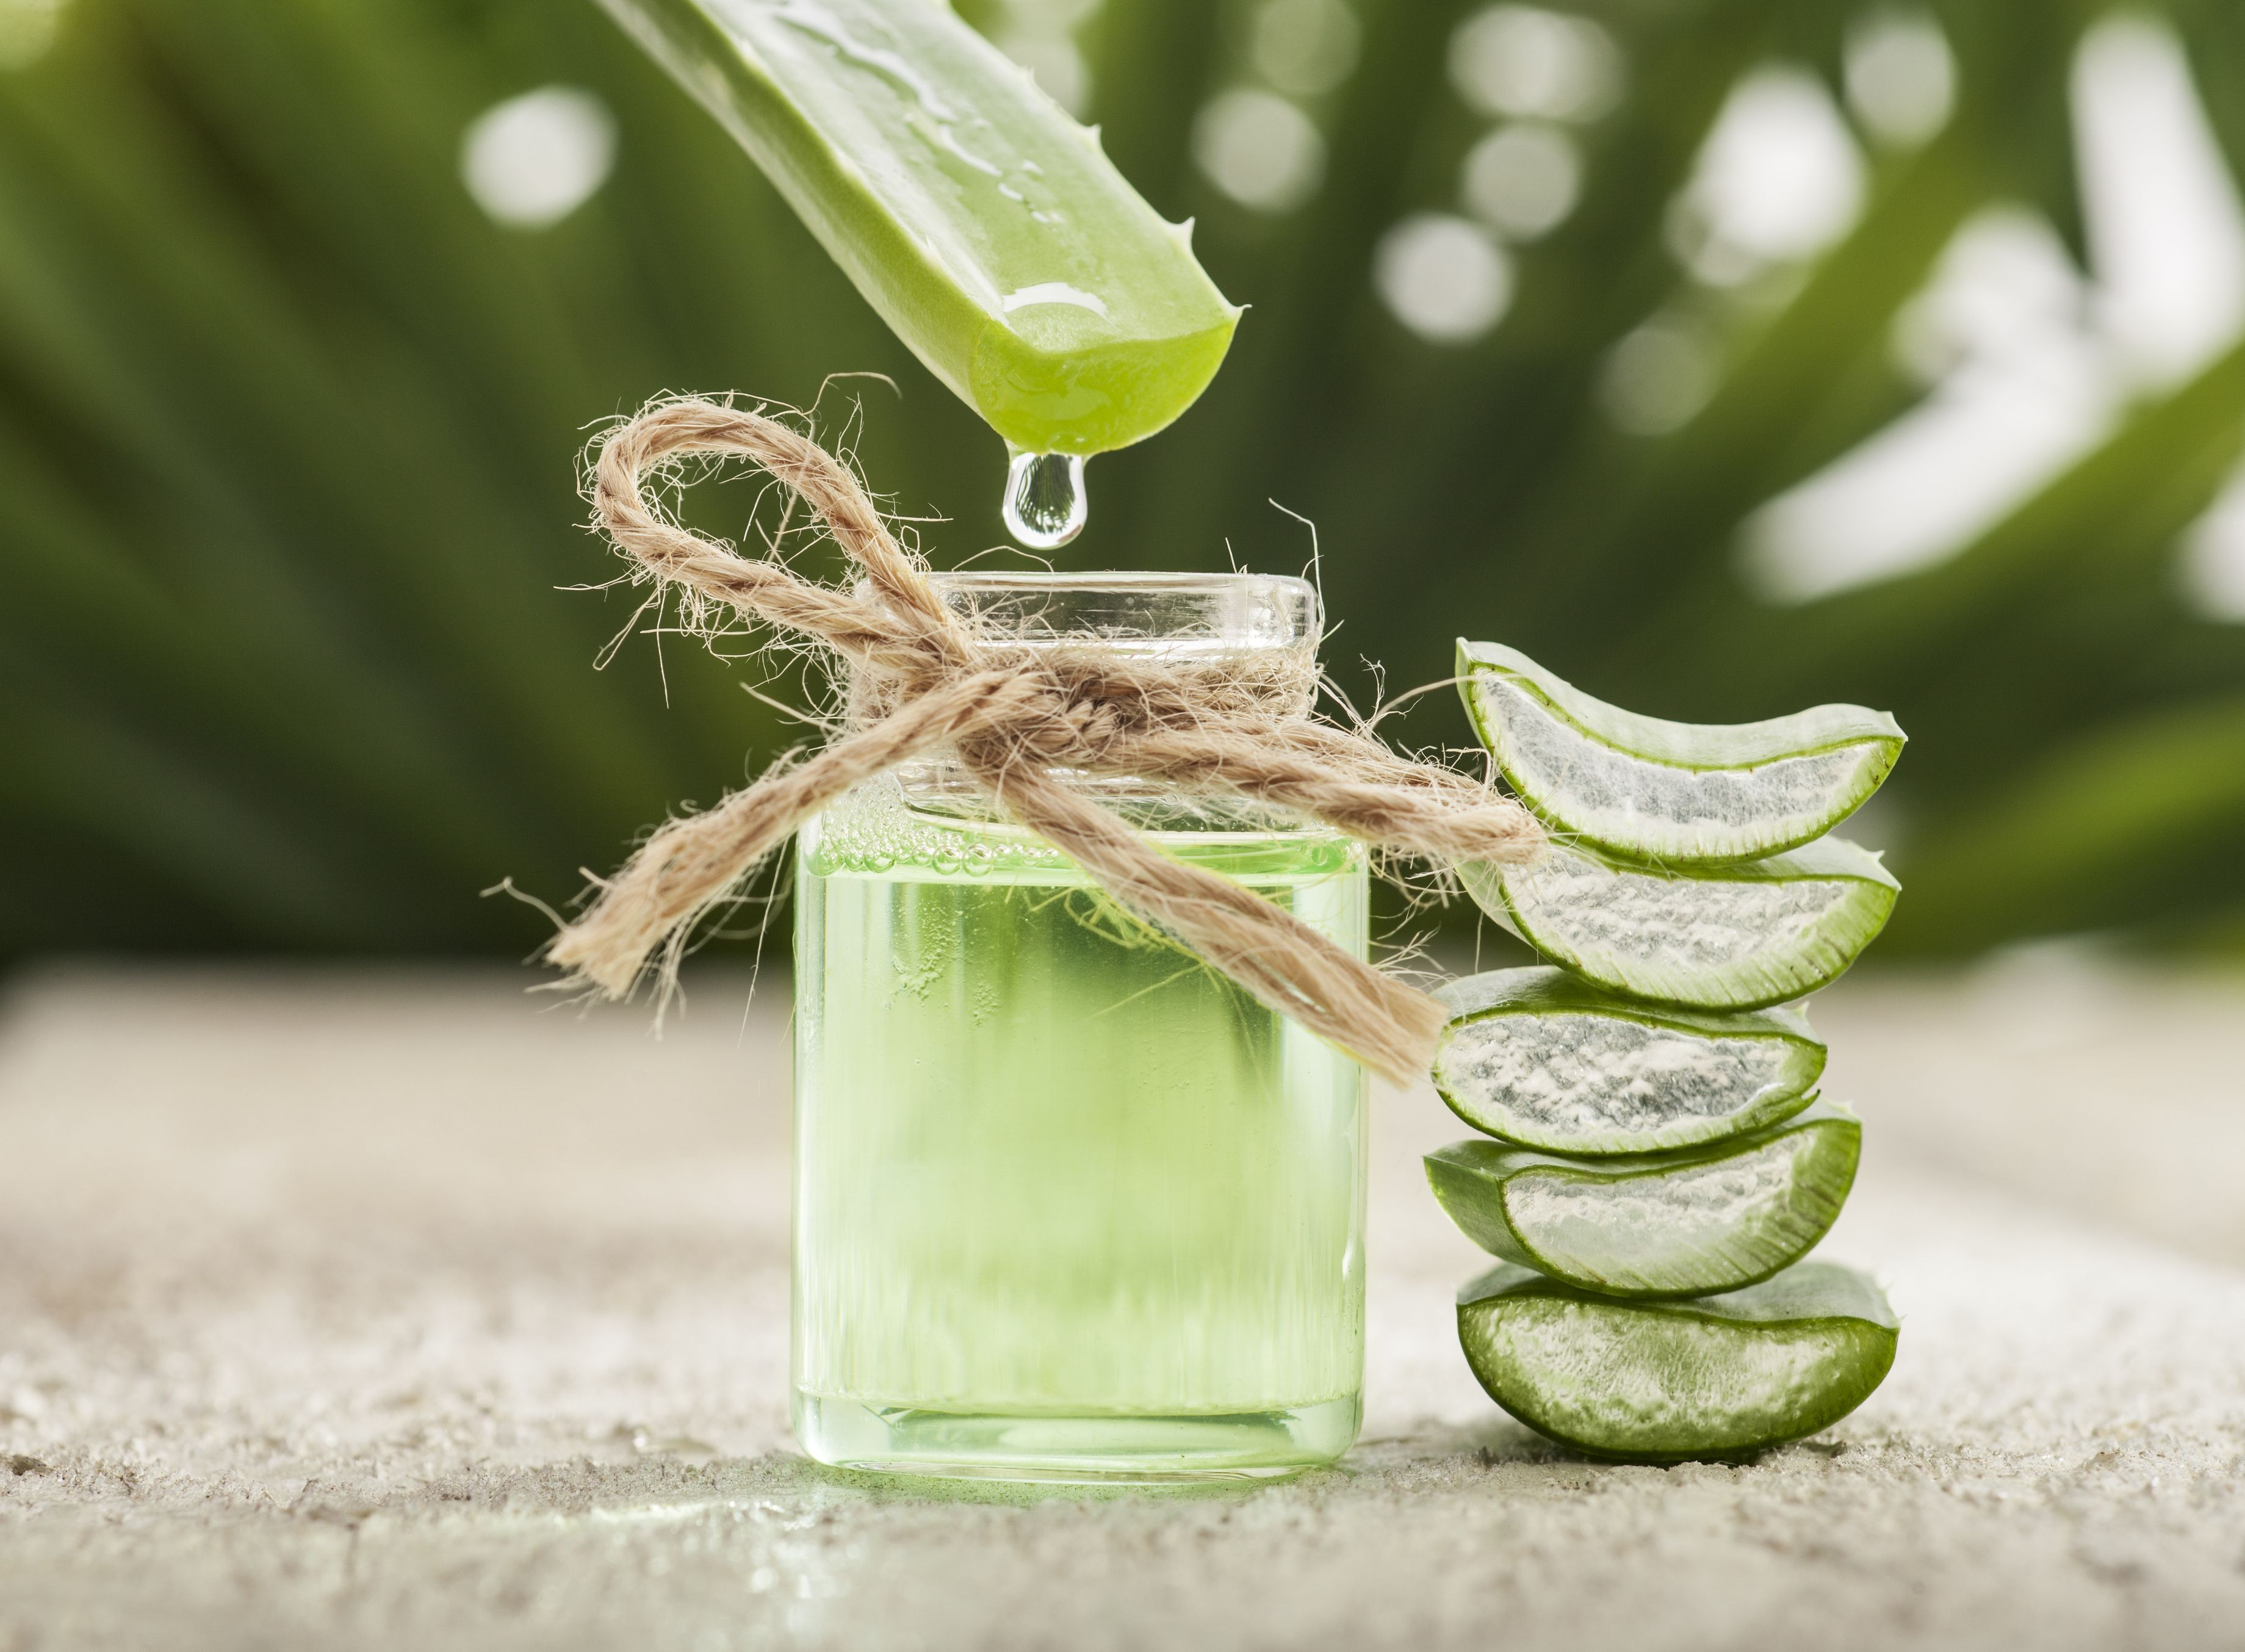 can drinking aloe juice help you lose weight?